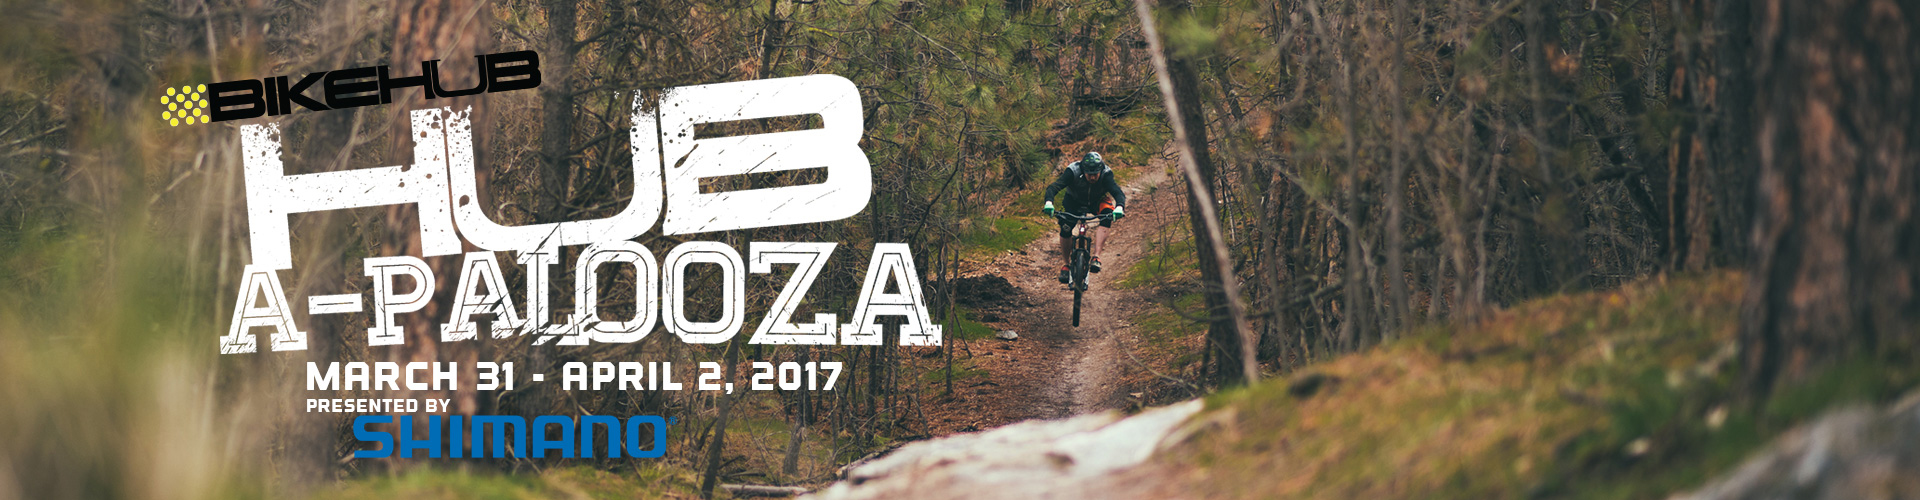 Hub-a-Palooza 2017 registration is UP!